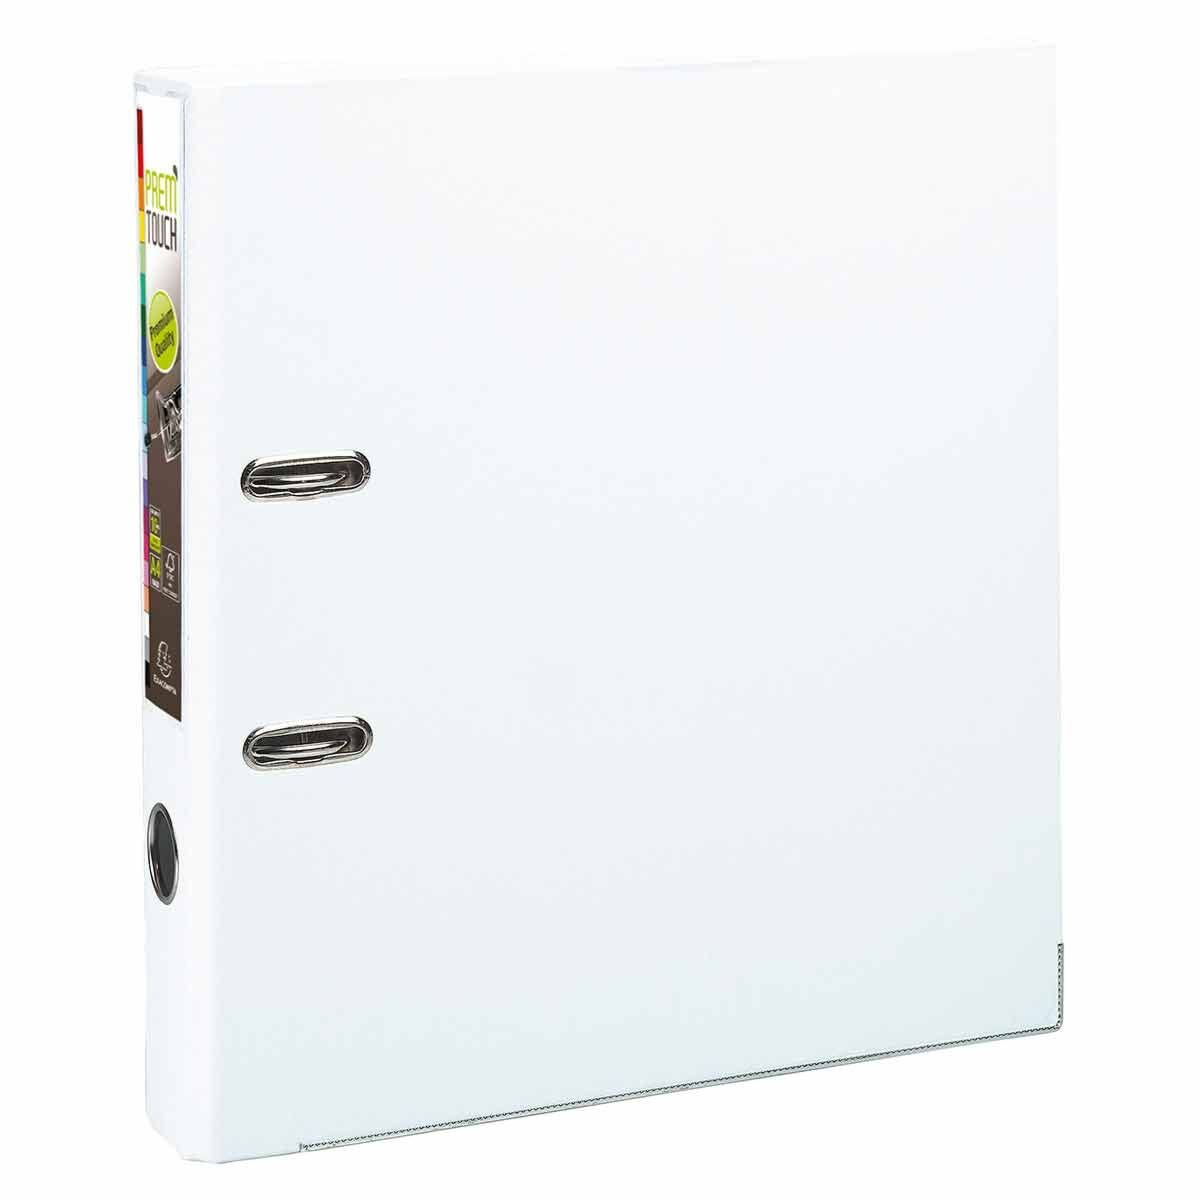 Exacompta PremTouch Lever Arch File A4 Plus PP 50mm Pack of 10 White